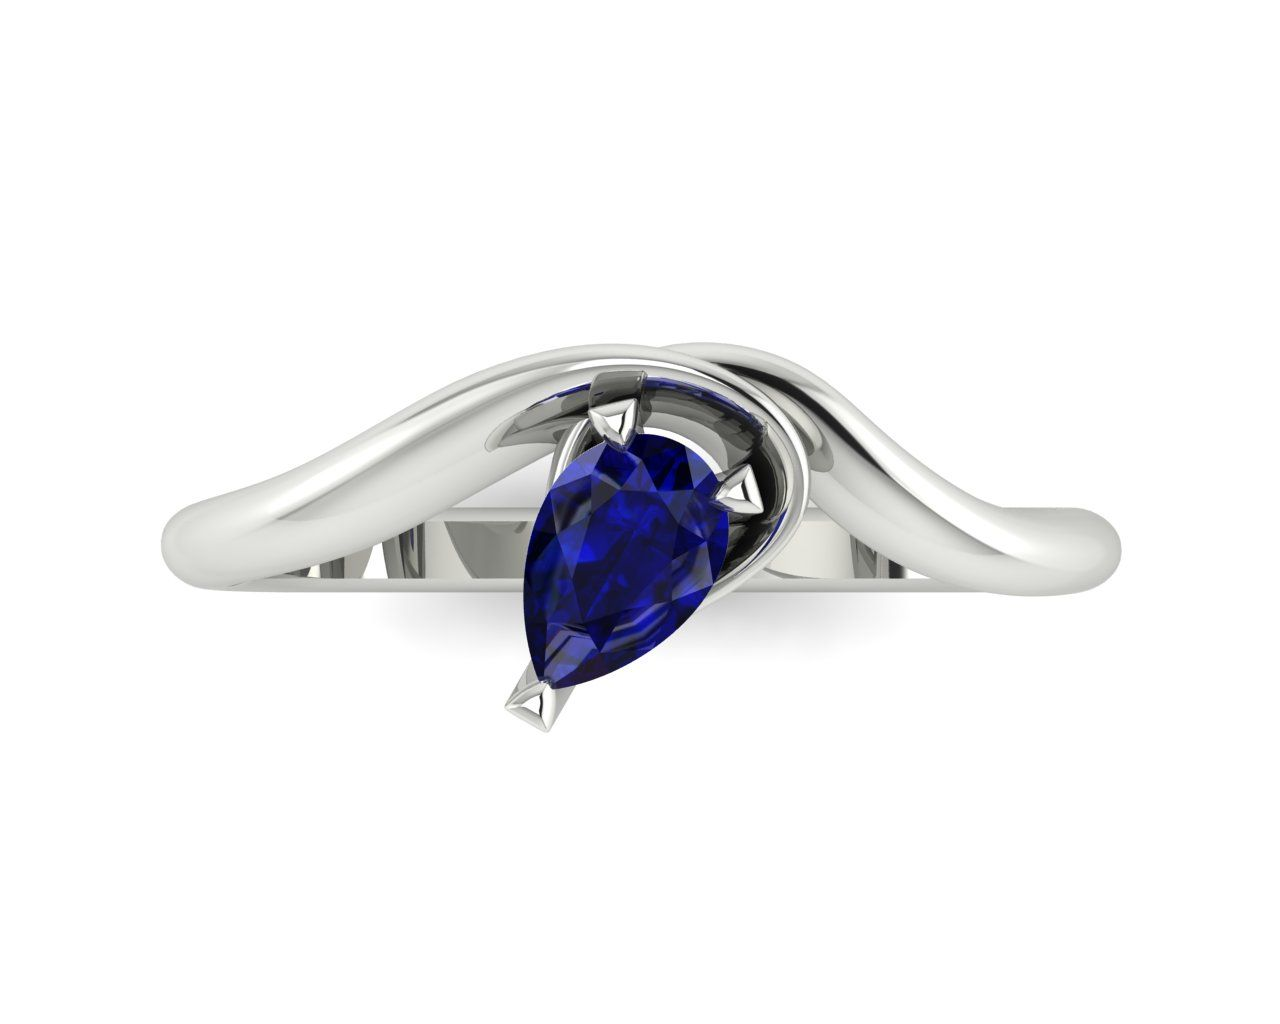 Organic and unusual white gold and sapphire engagement ring